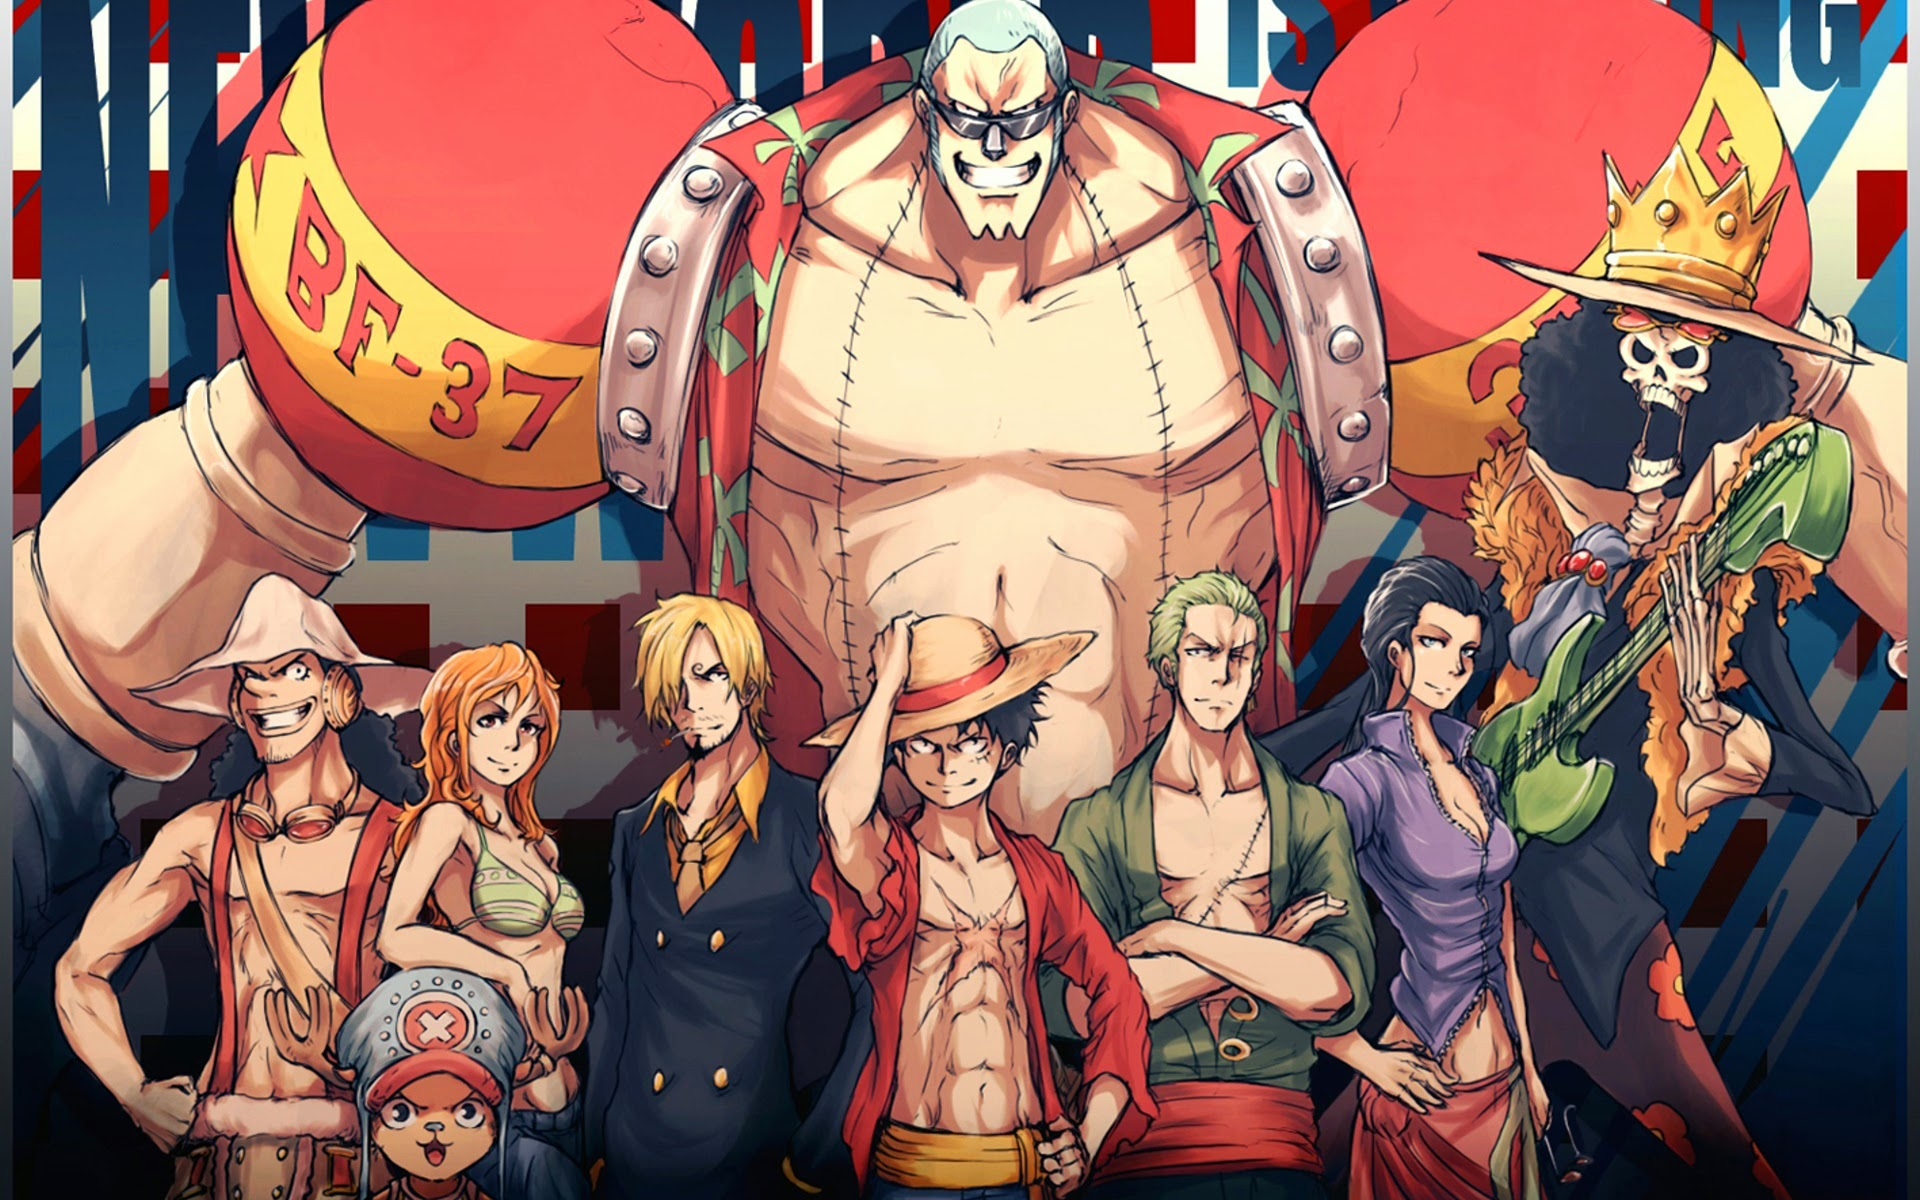 49 One Piece Straw Hat Wallpaper On Wallpapersafari